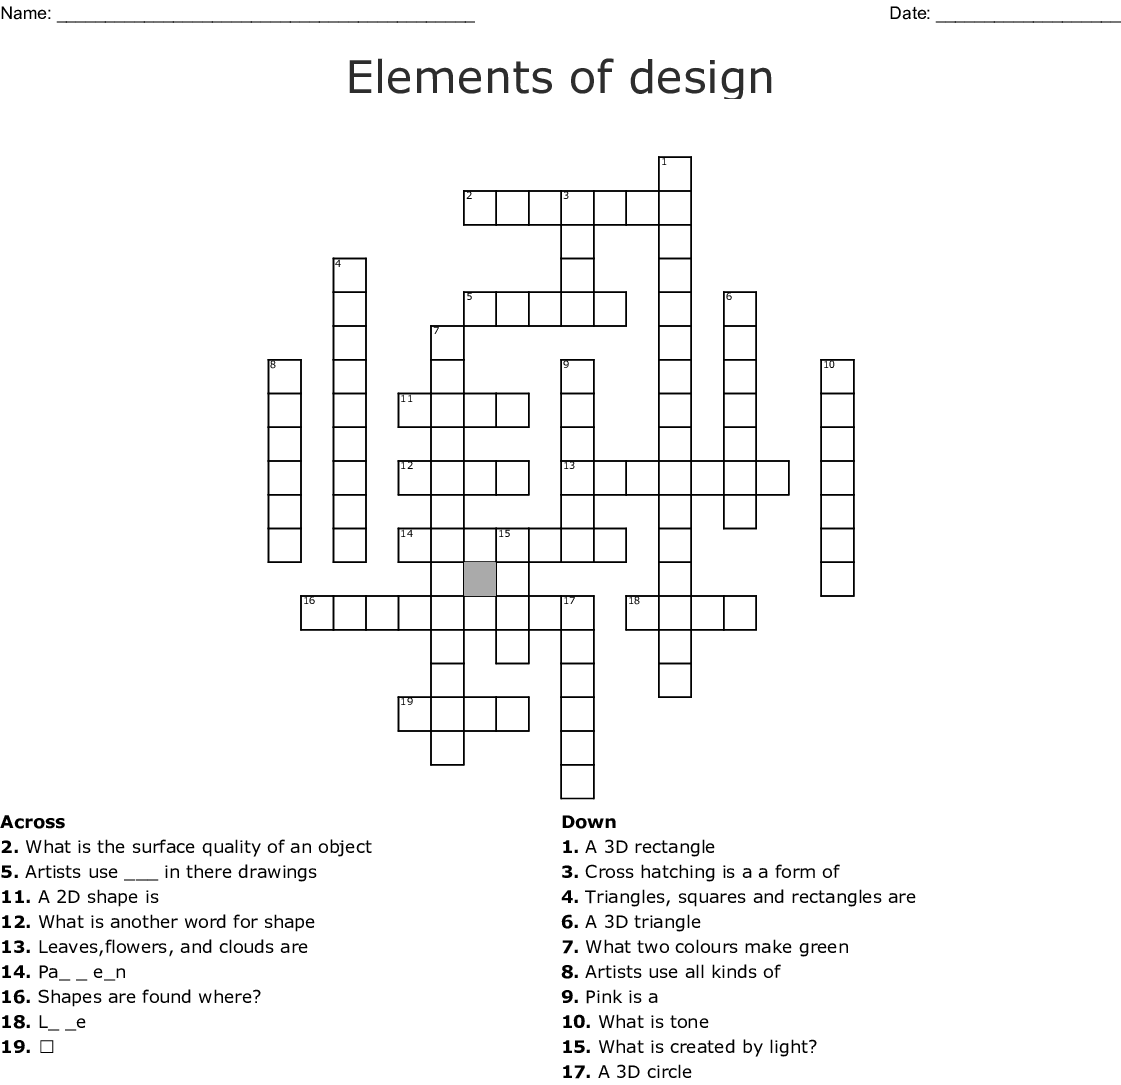 Elements And Principles Of Design Crossword Puzzle